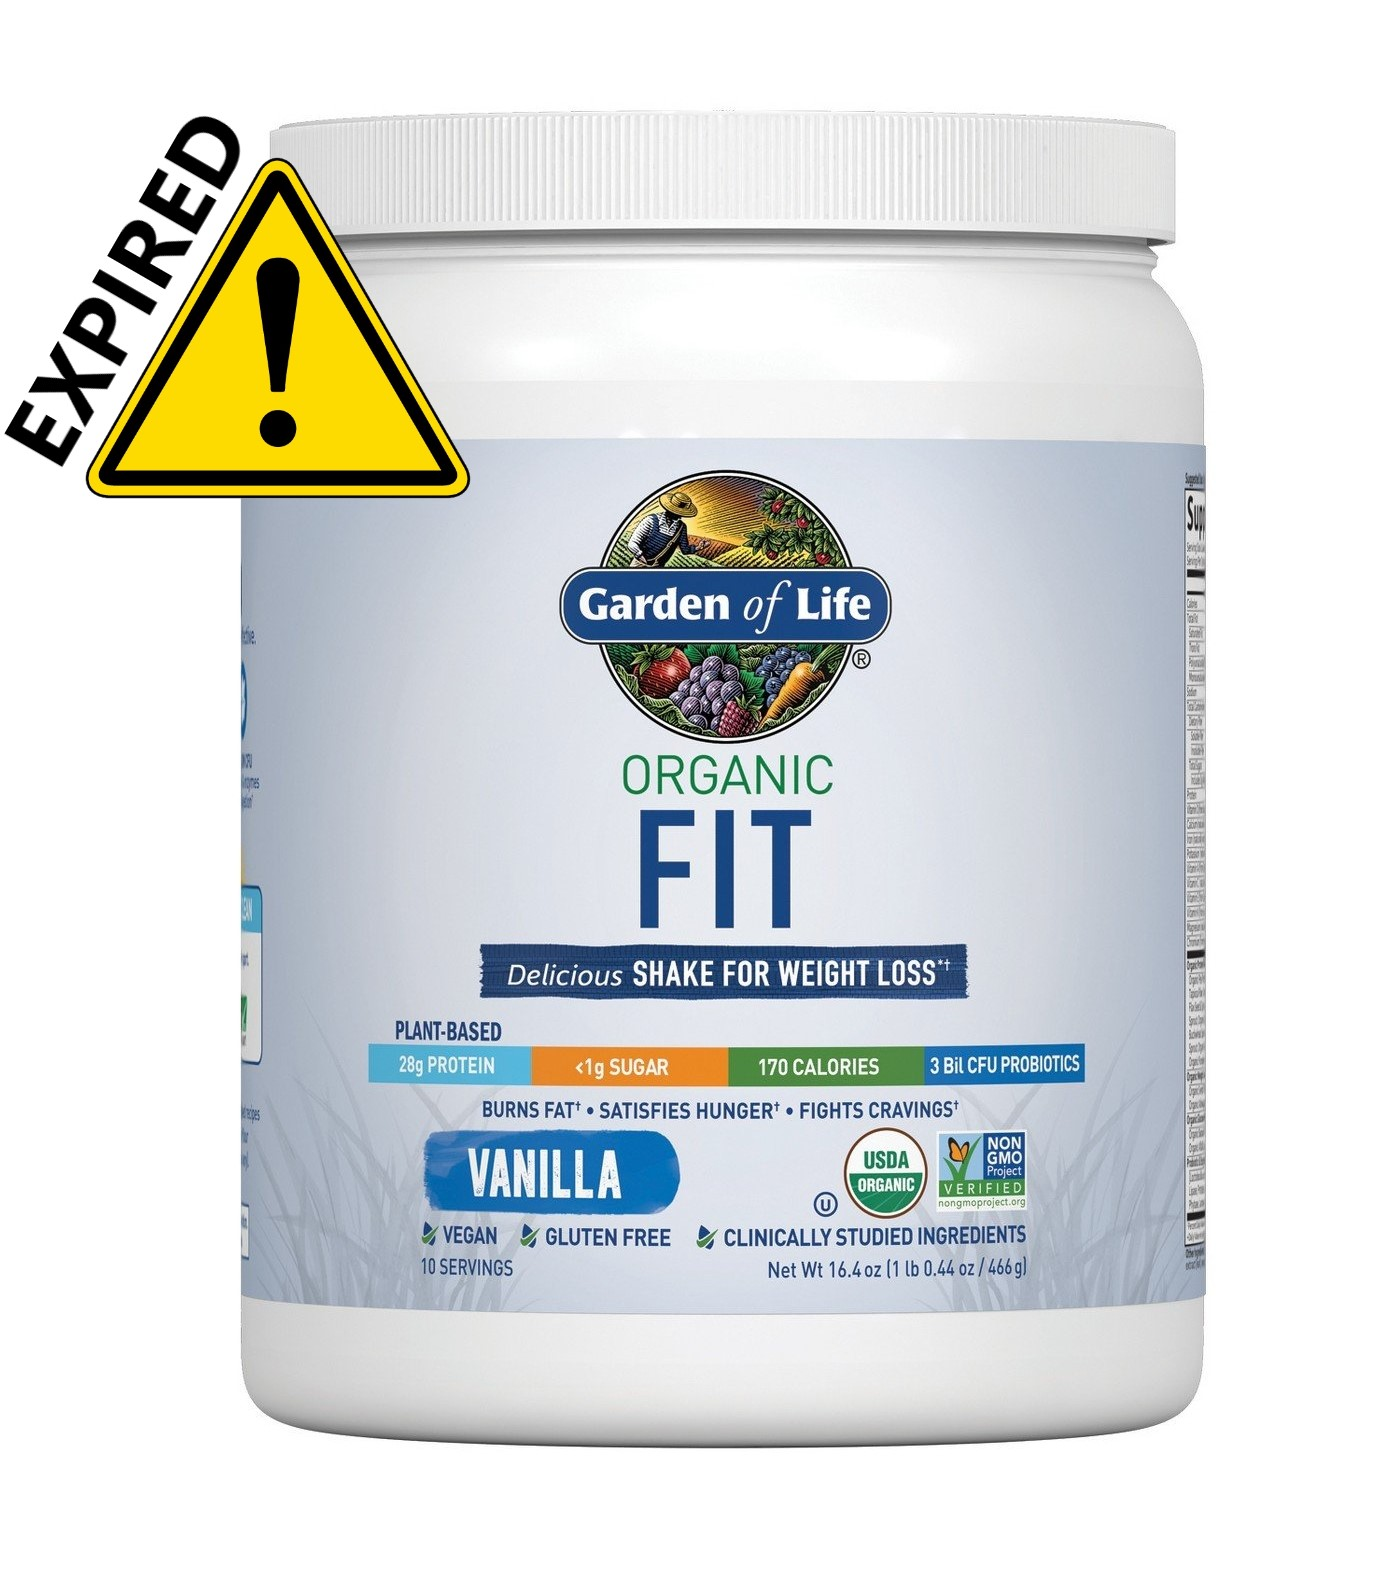 Garden Of Life Organic Fit Protein Powder Vanilla 16 4 Ounces Pack Of 1 1 0 Pound White Expired Walmart Canada